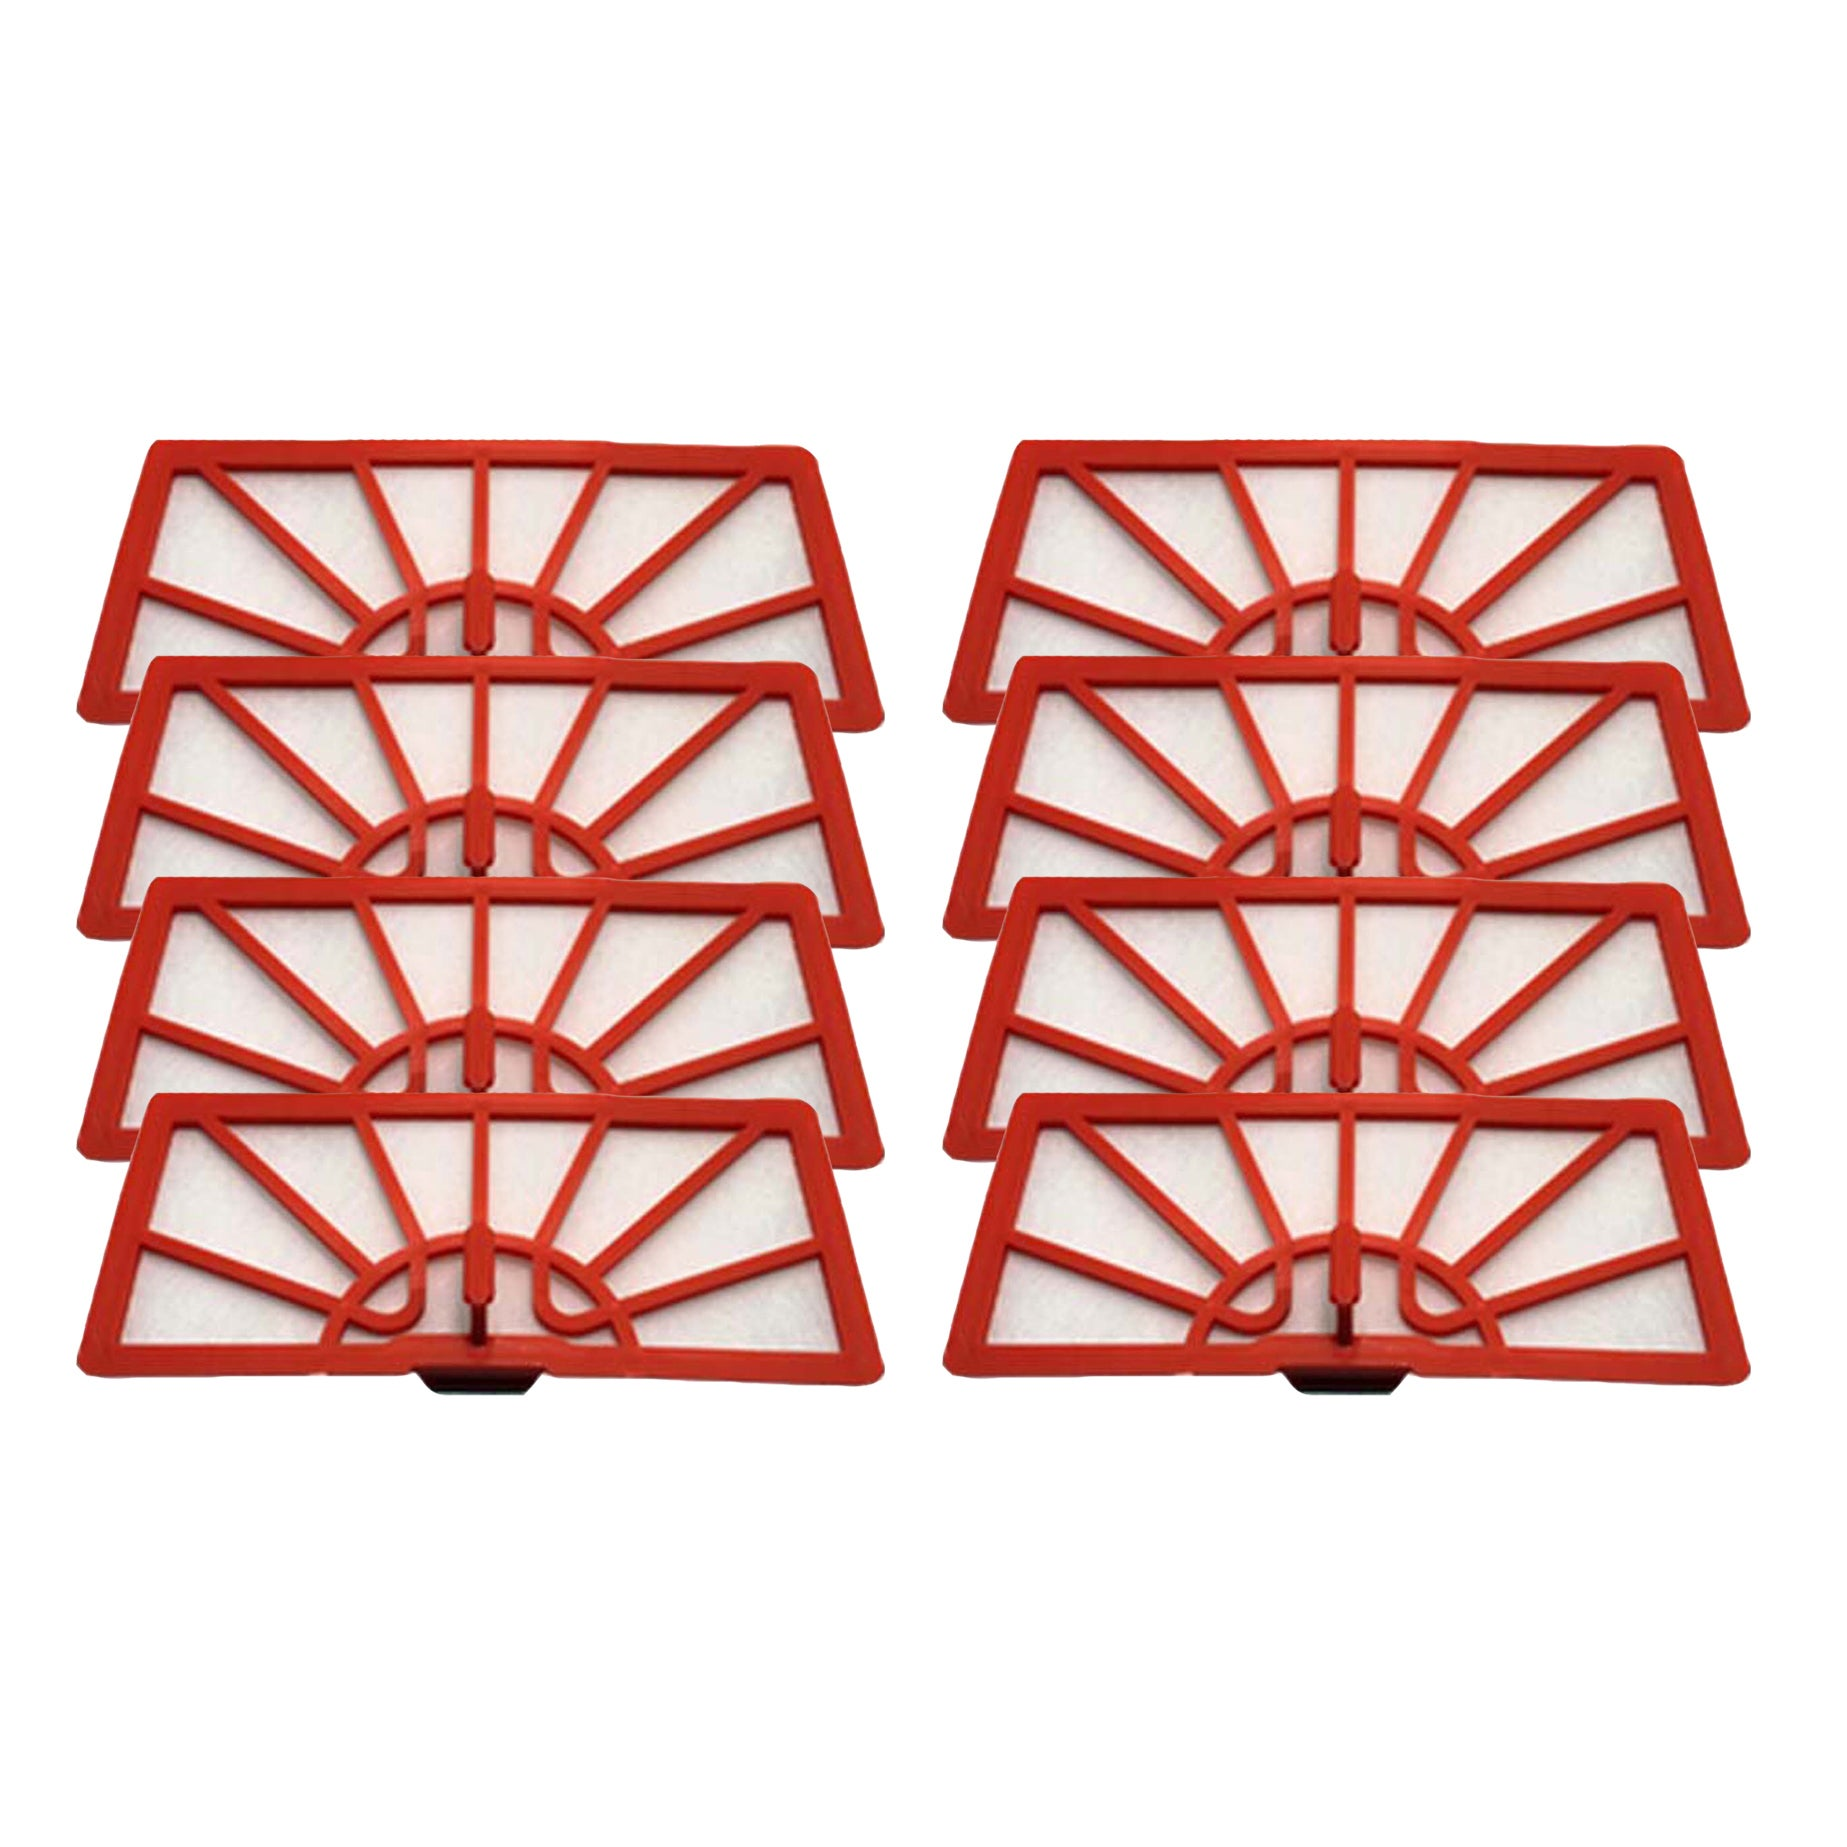 Crucial 8 Neato XV-11 Air Filters Part # 945-0004 945-002...